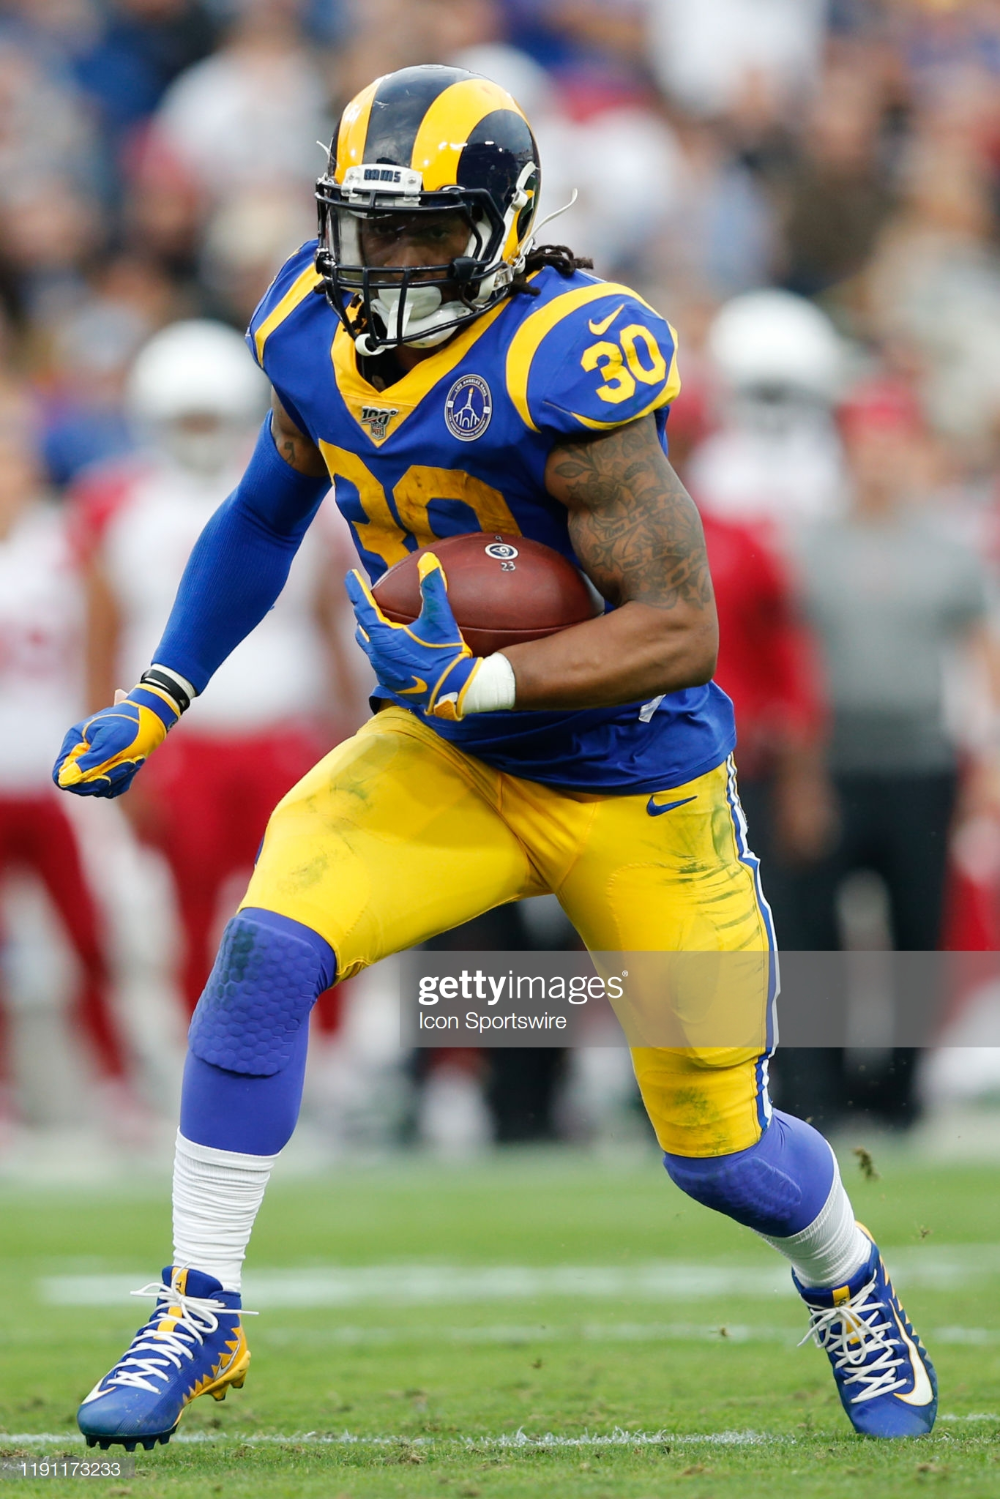 Los Angeles Rams Running Back Todd Gurley Runs The Ball For A Gain In 2020 Todd Gurley Running Back Los Angeles Rams